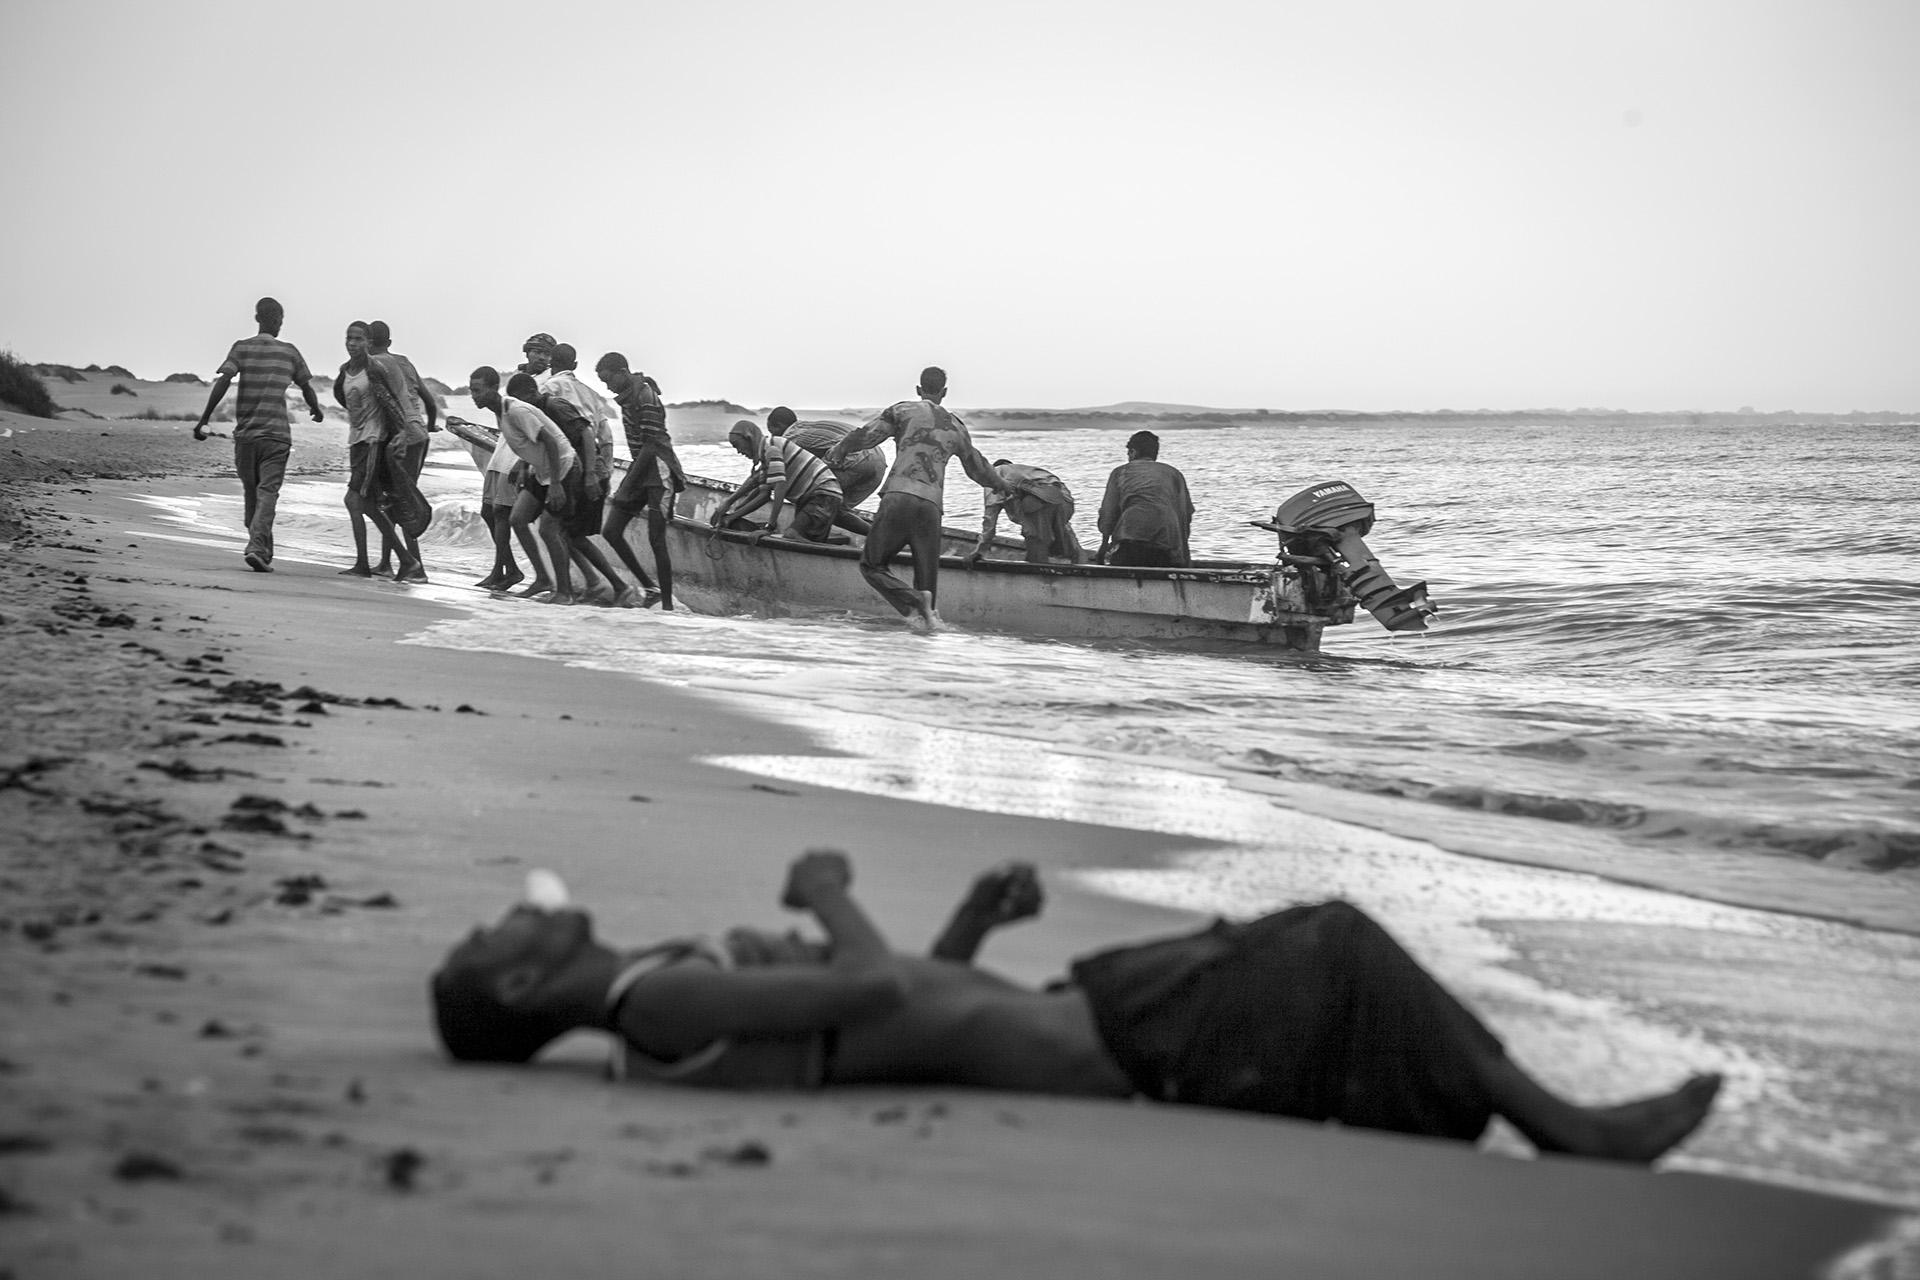 Refugees rescued by local fishermen are brought to a shore after being forced into the water far offshore. Like the victim in the foreground, many of their fellow passengers were not so lucky, lost their lives to the sea.